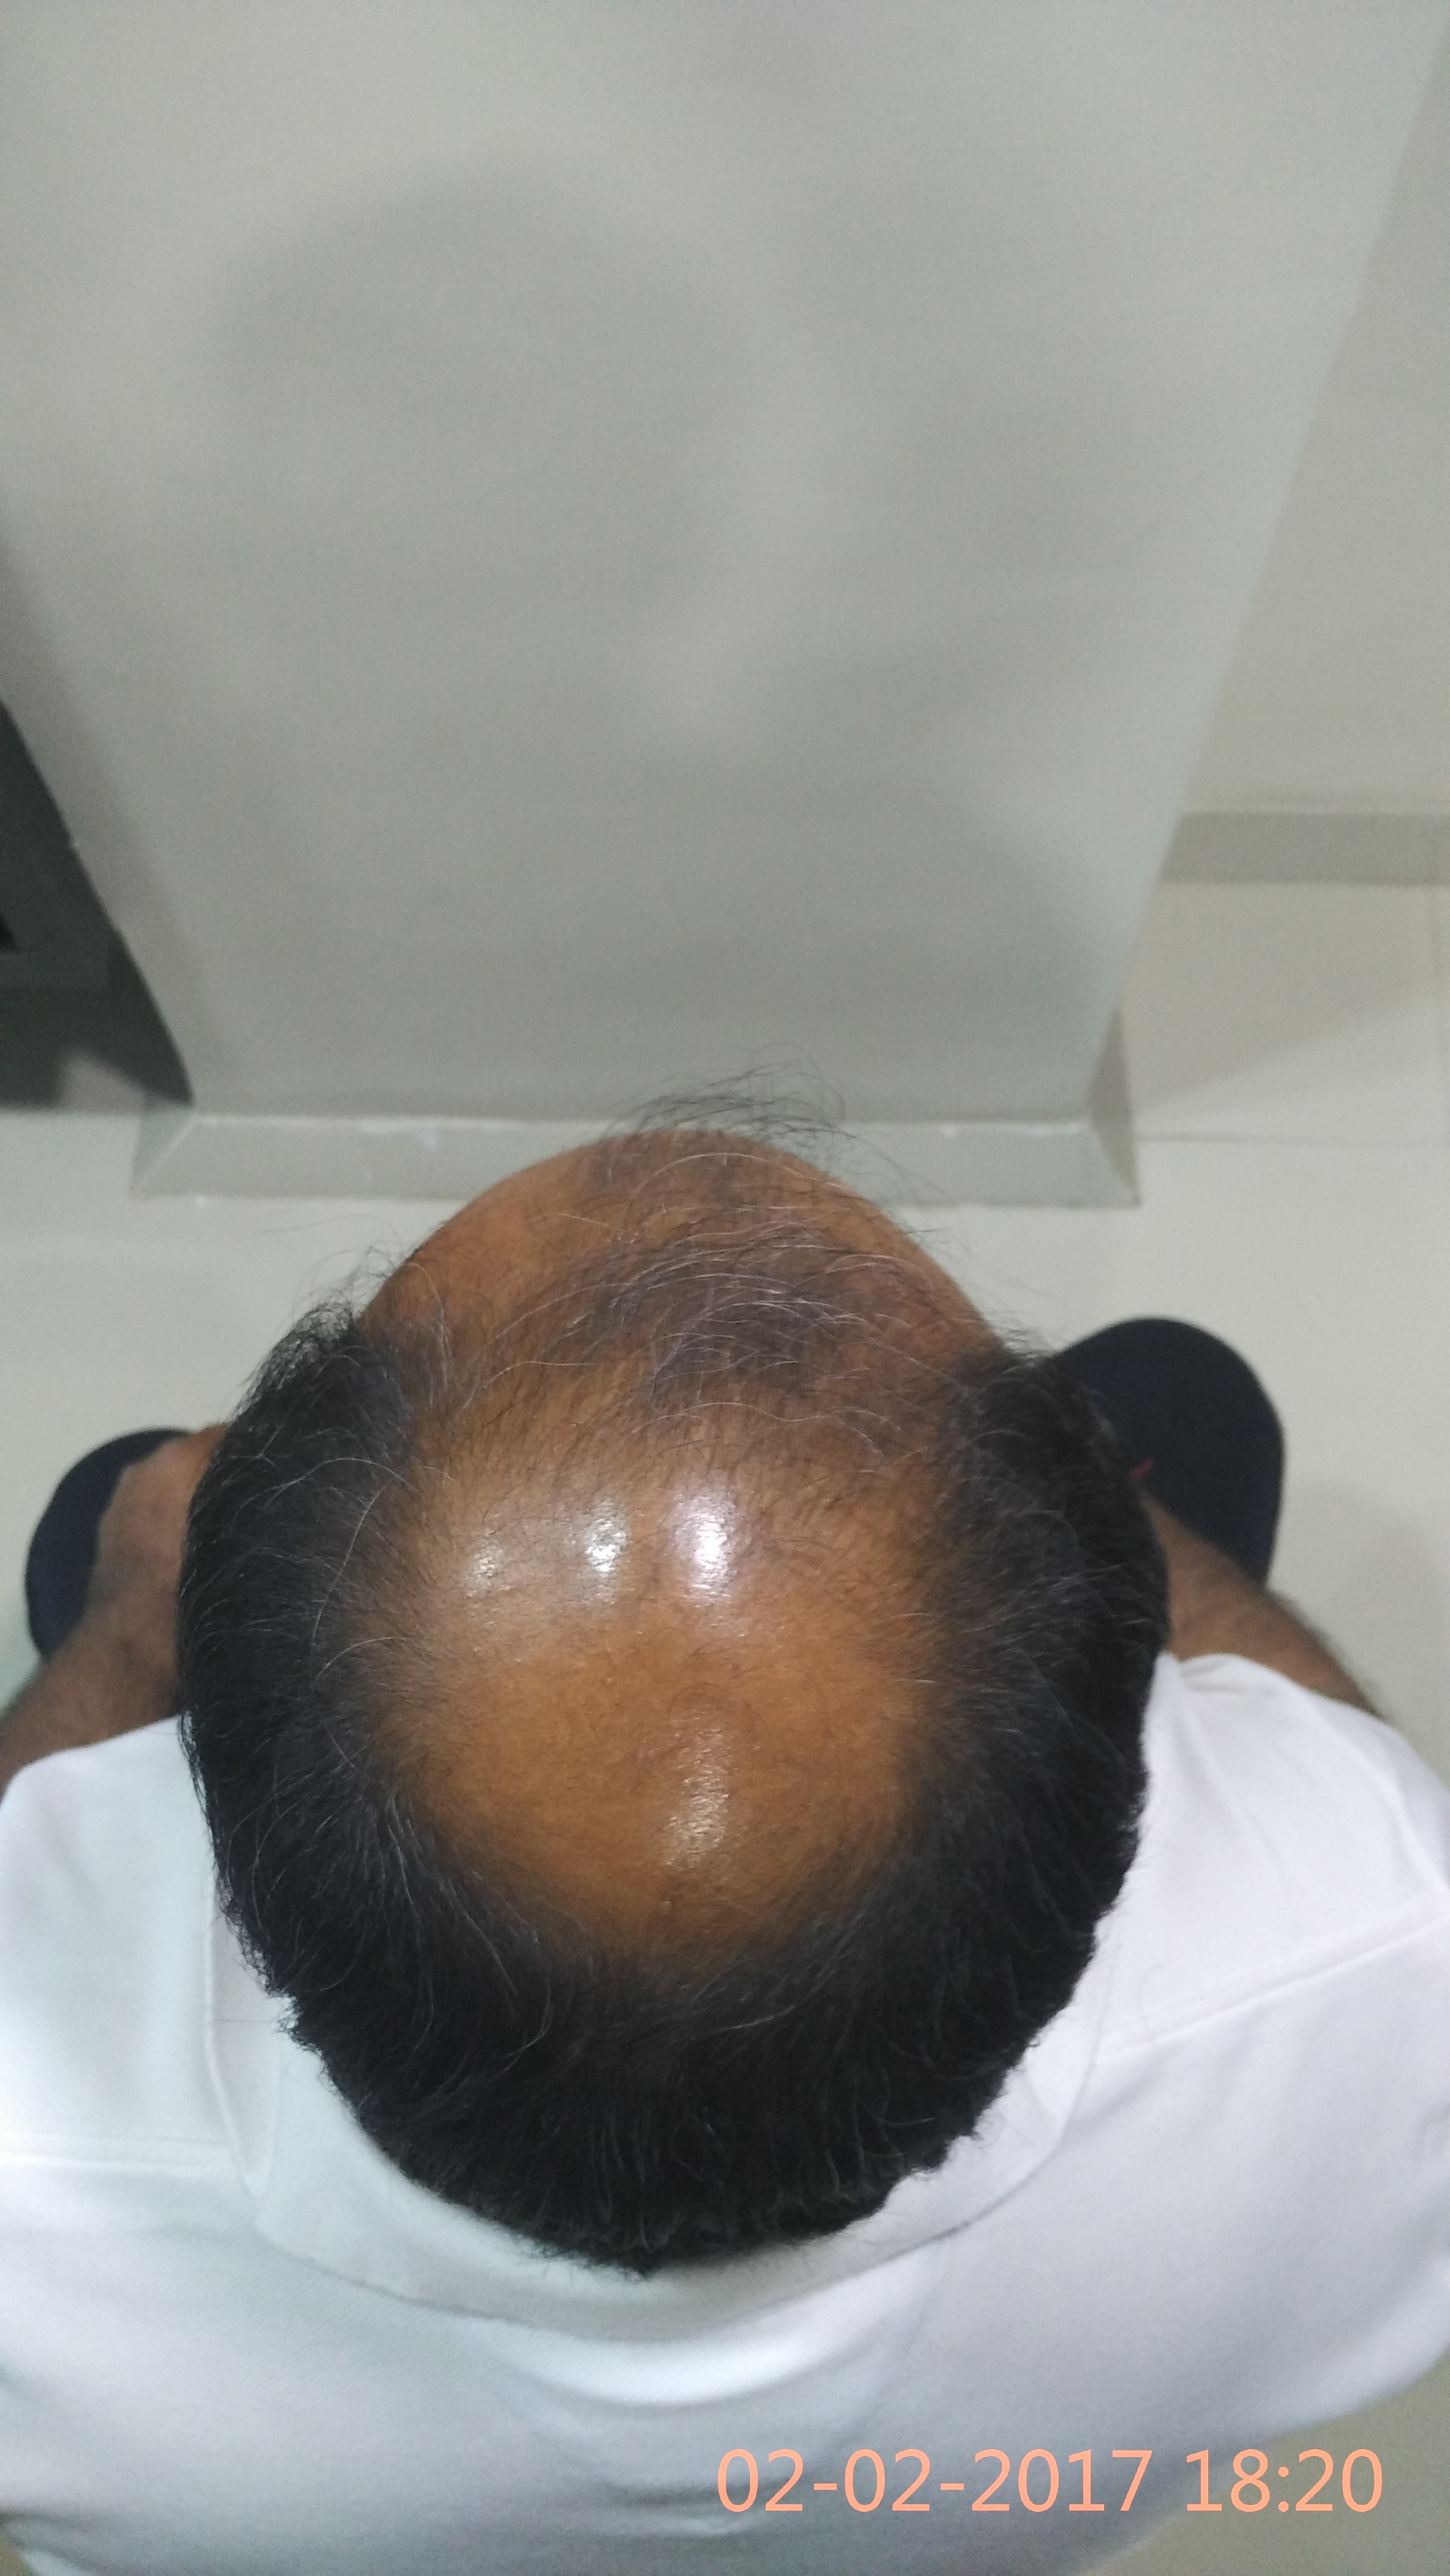 What is the Average cost of Hair Transplantation?  Actually average cost of Hair Transplantation varies significantly among different cities and states in the same country….and sometimes we may notice dramatic difference also...  In India, mostly cost of hair transplant is calculated on hair root or graft basis and varies about 30 INR to 50 INR per graft.  At Dev Hair Transplant Clinic, we offer both methods of Hair Restoration, FUT(Strip Method) and FUE(Stitchless Method) with dedicated quality and still provide savings of around  25-30% compared to other centres in Ahmedabad.  WHY???  Simply, we do not have any overhead…  And secondly, no one is getting paid  commission for your Hair Transplantation.  At the same time we are giving best and most natural looks of Hair Transplant in Ahmedabad. You can contact our satisfied clients as many as you want .  Our Services are available  on Ashram Road, Usmanpura, S G Highway, Bapunagar, Nikol, Naroda and also in Gandhinagar and Surat.